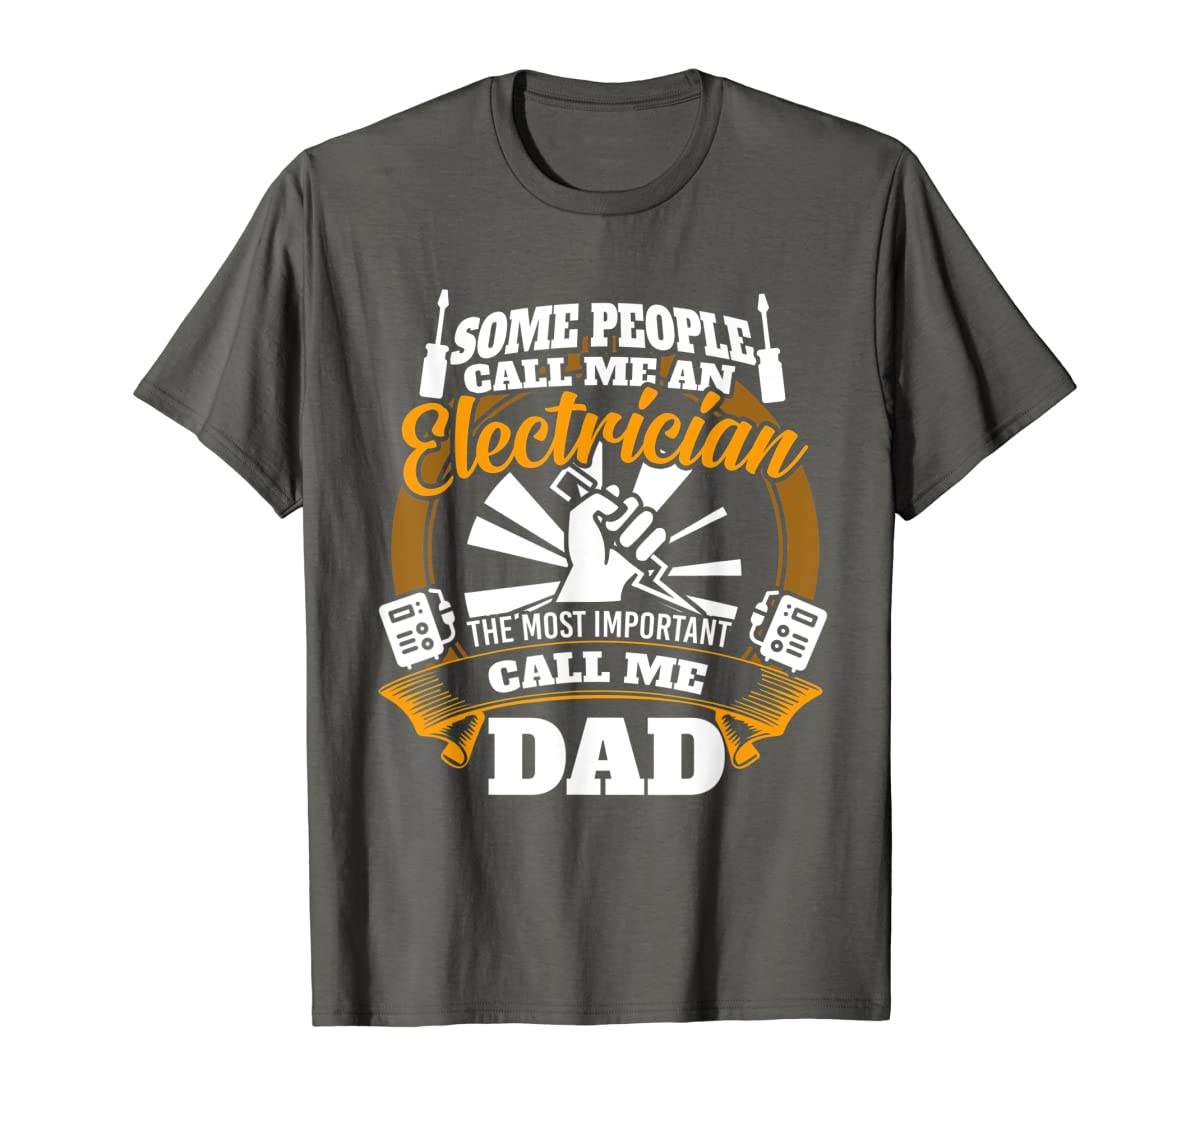 Mens Funny Electrician T-shirt for dad who loves technician gifts-Men's T-Shirt-Dark Heather